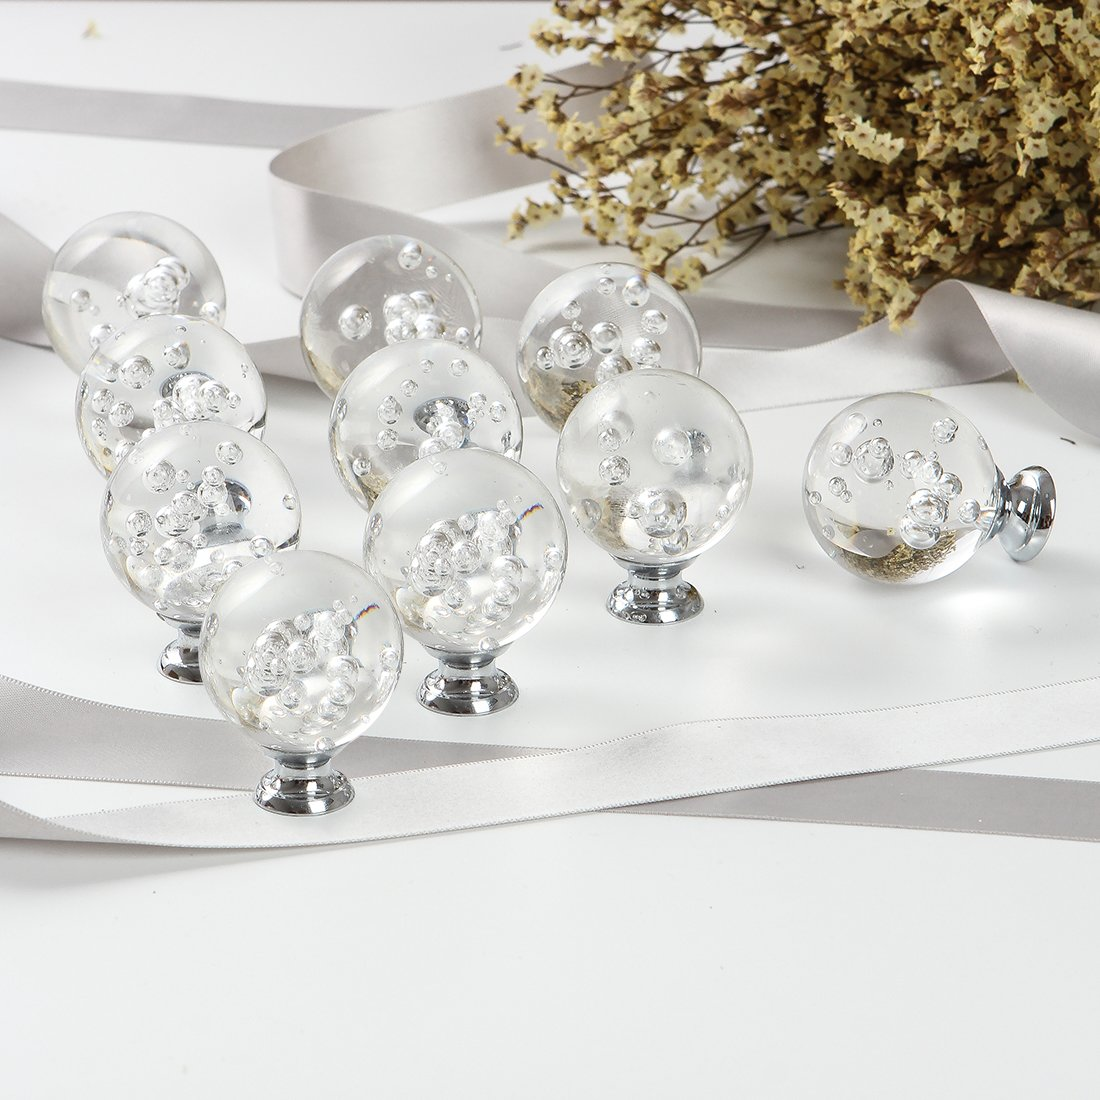 CZC HOME 10 PCS 40MM Bubbles Ball Crystal Cabinet Pulls Handle Glass Knobs Bathroom Dressers Drawers Cupboard (Transparent) by CZC HOME (Image #5)